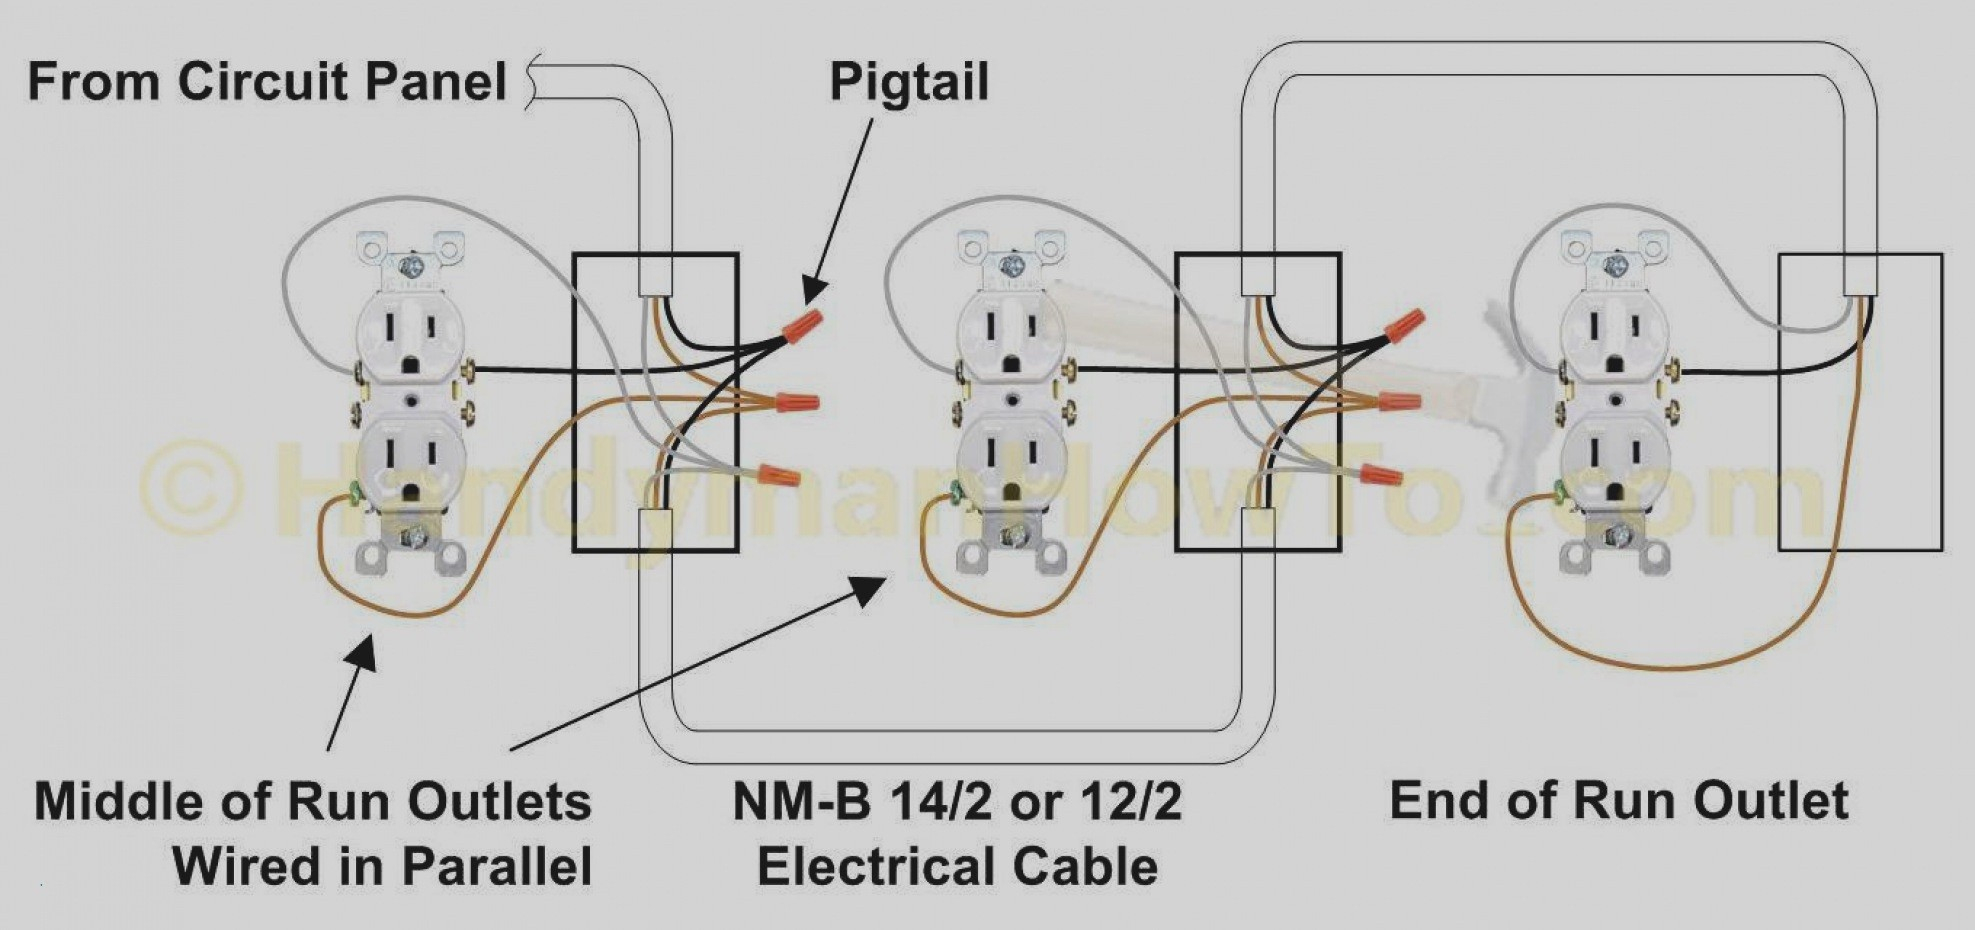 Wiring Receptacles In Parallel Diagram - Wiring Diagram Data - Receptacle Wiring Diagram